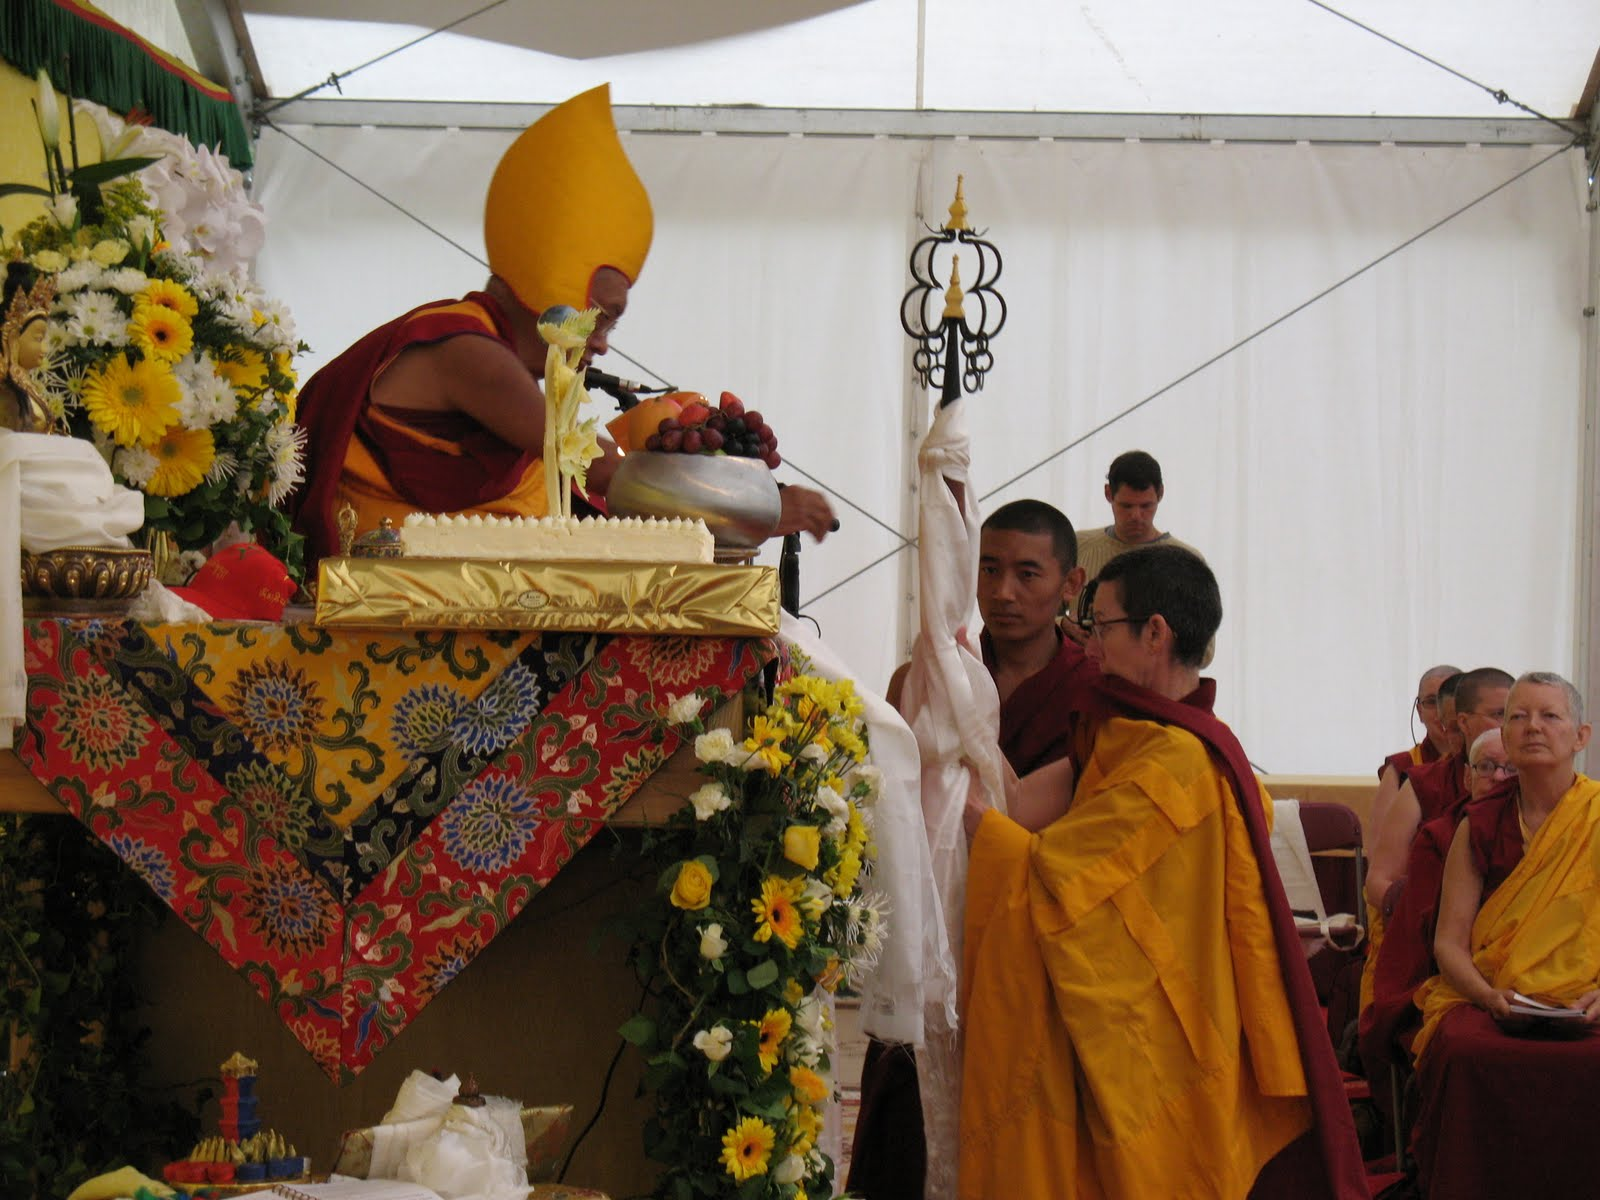 Ven. Kaye Miner offering monks staff during long Life puja offered to Lama Zopa Rinpoche after the CPMT Meeting at Institut Vajra Yogini, France, May 2009.